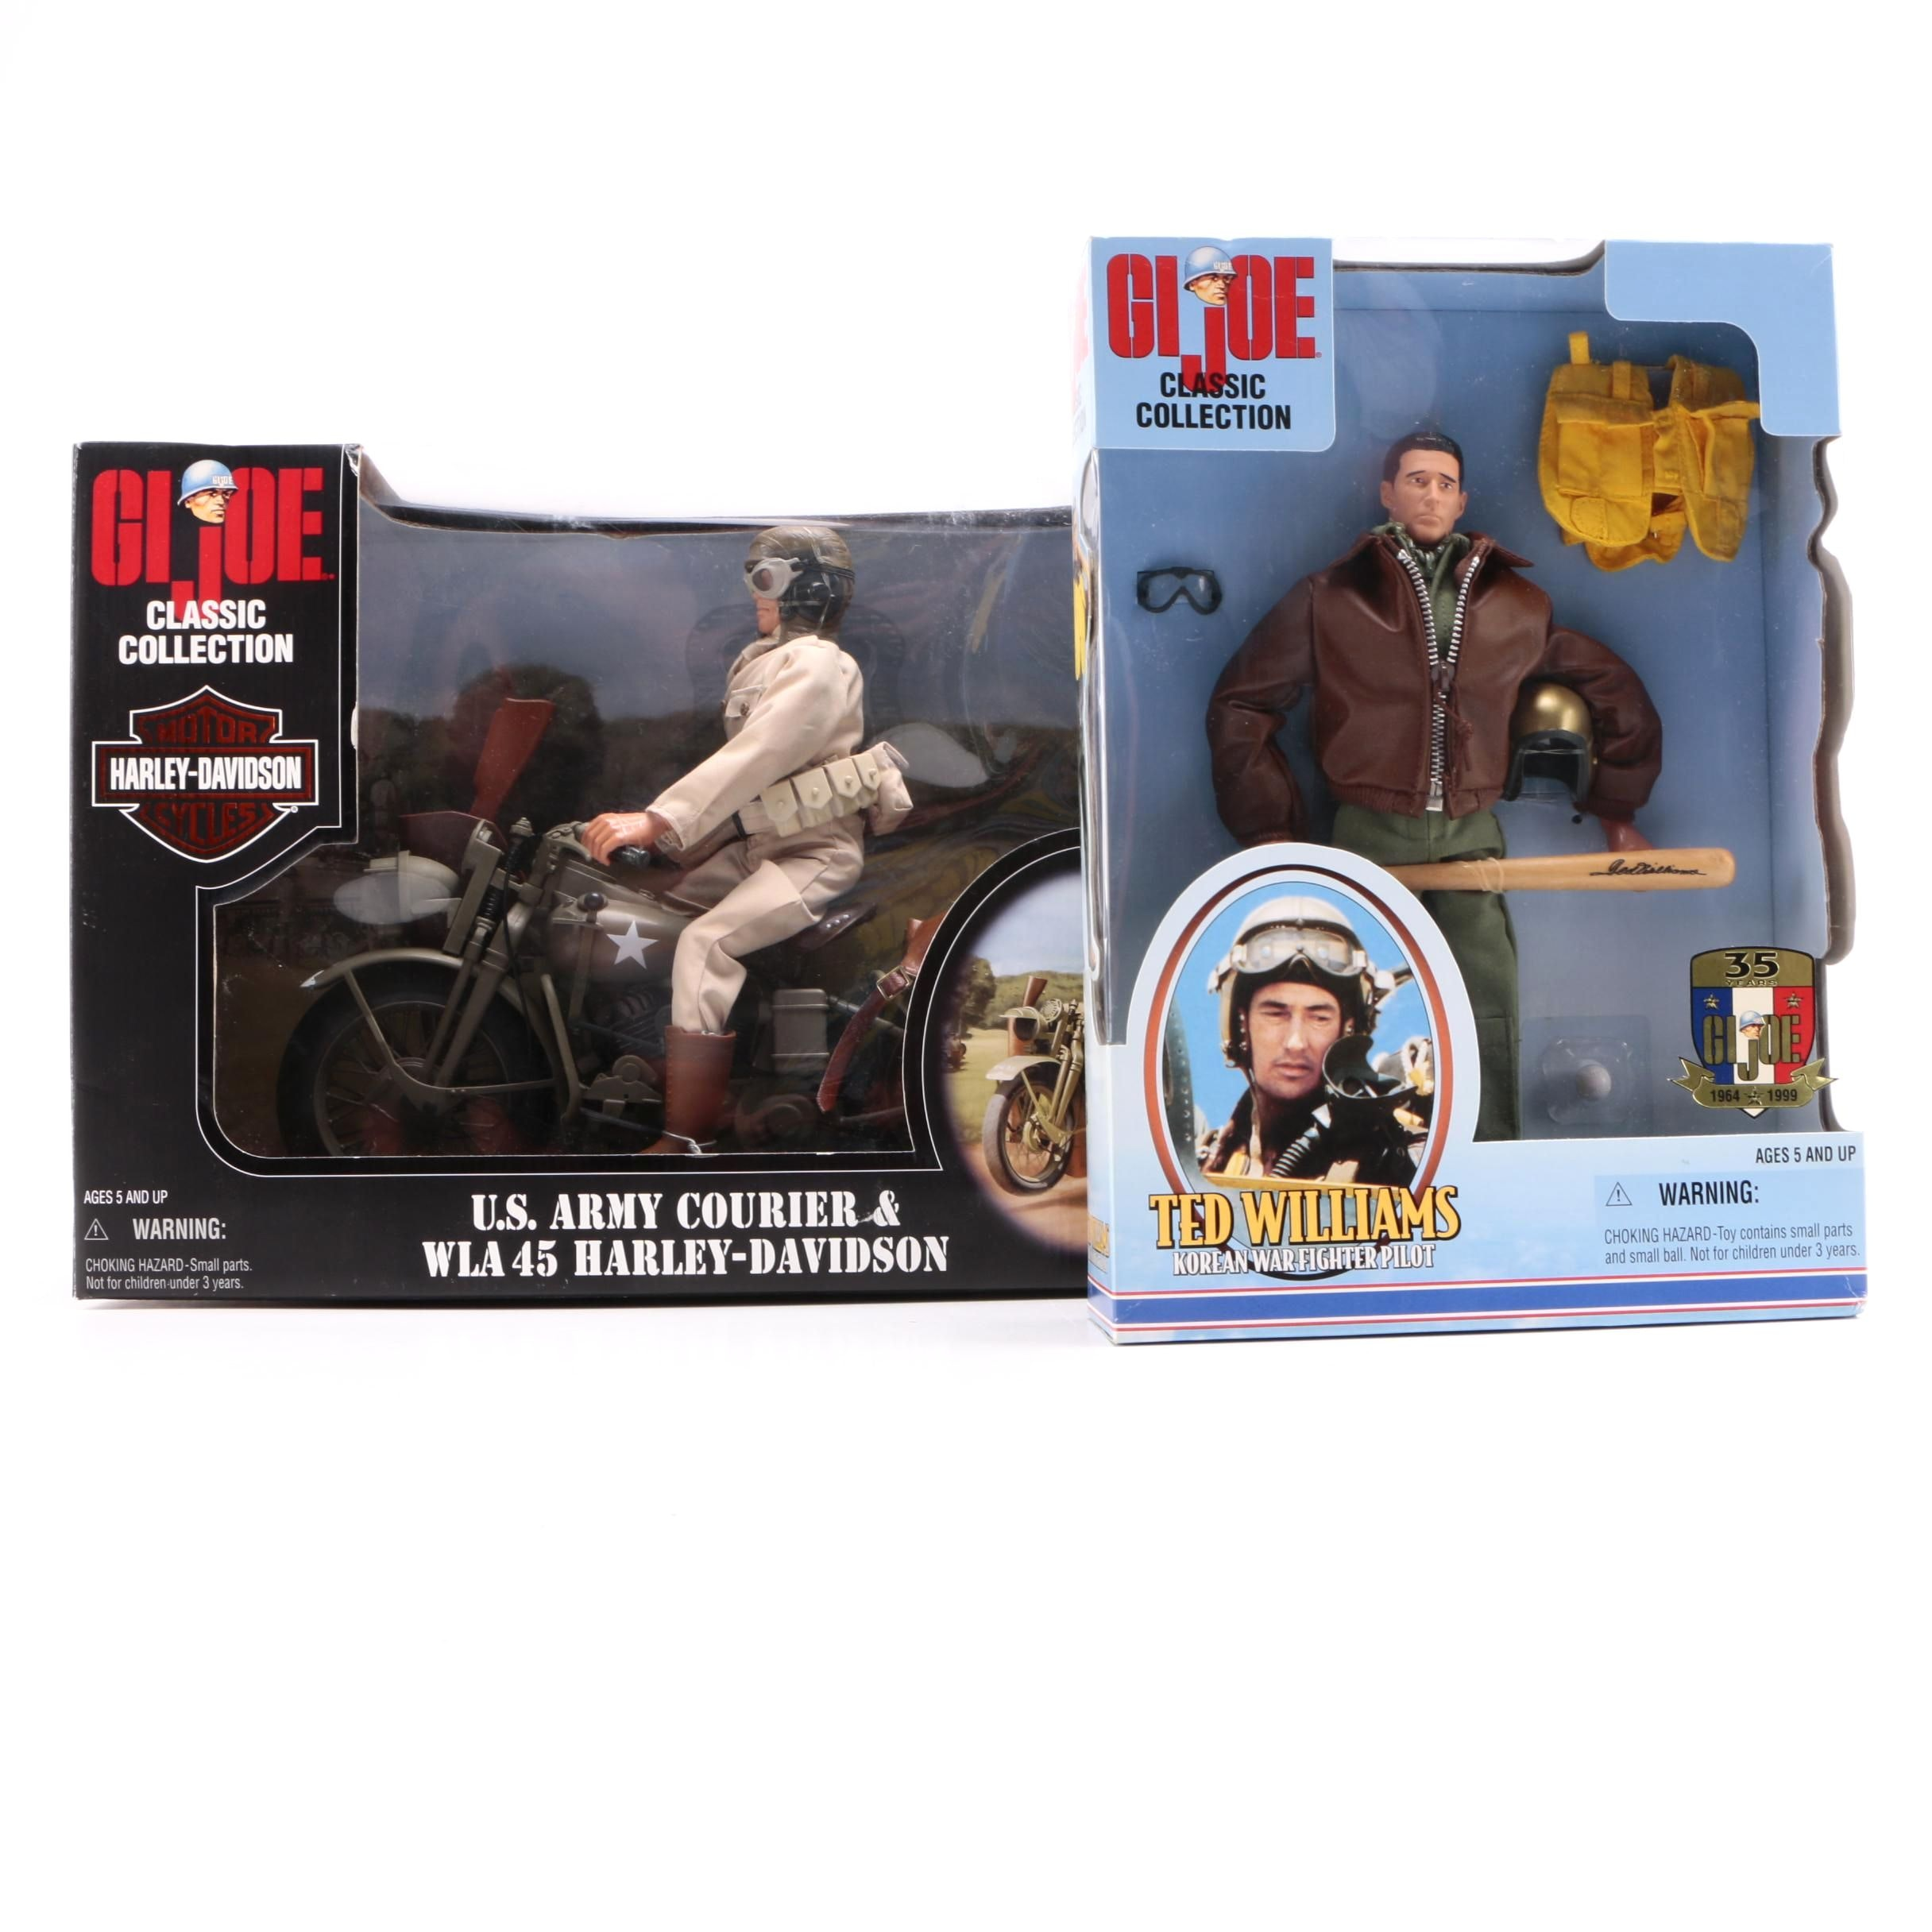 Two G.I. Joe Classic Collection Figures